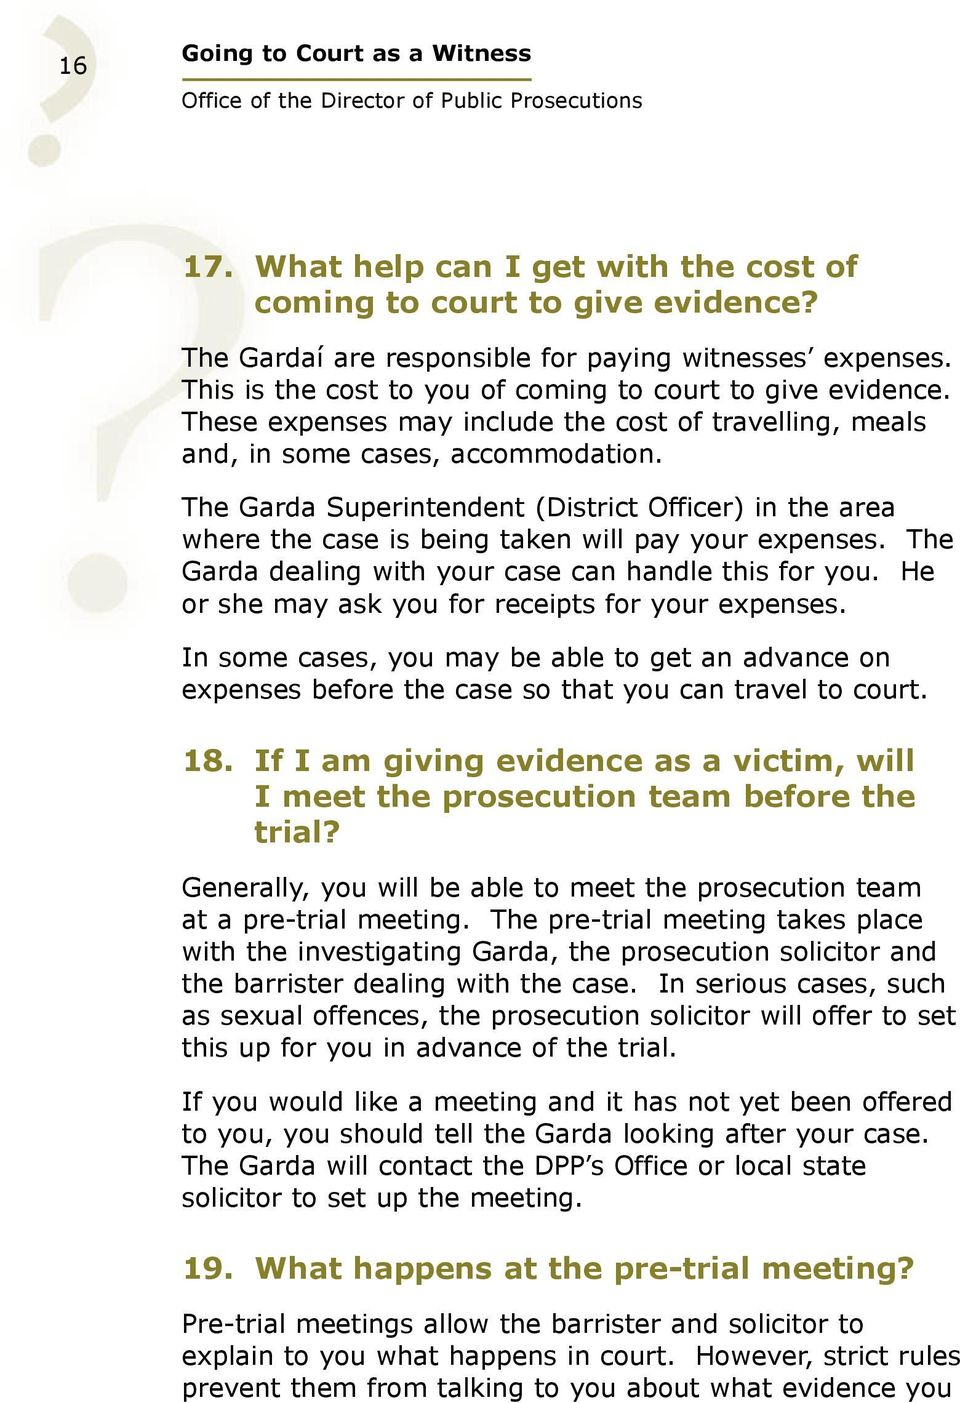 The Garda Superintendent (District Officer) in the area where the case is being taken will pay your expenses. The Garda dealing with your case can handle this for you.